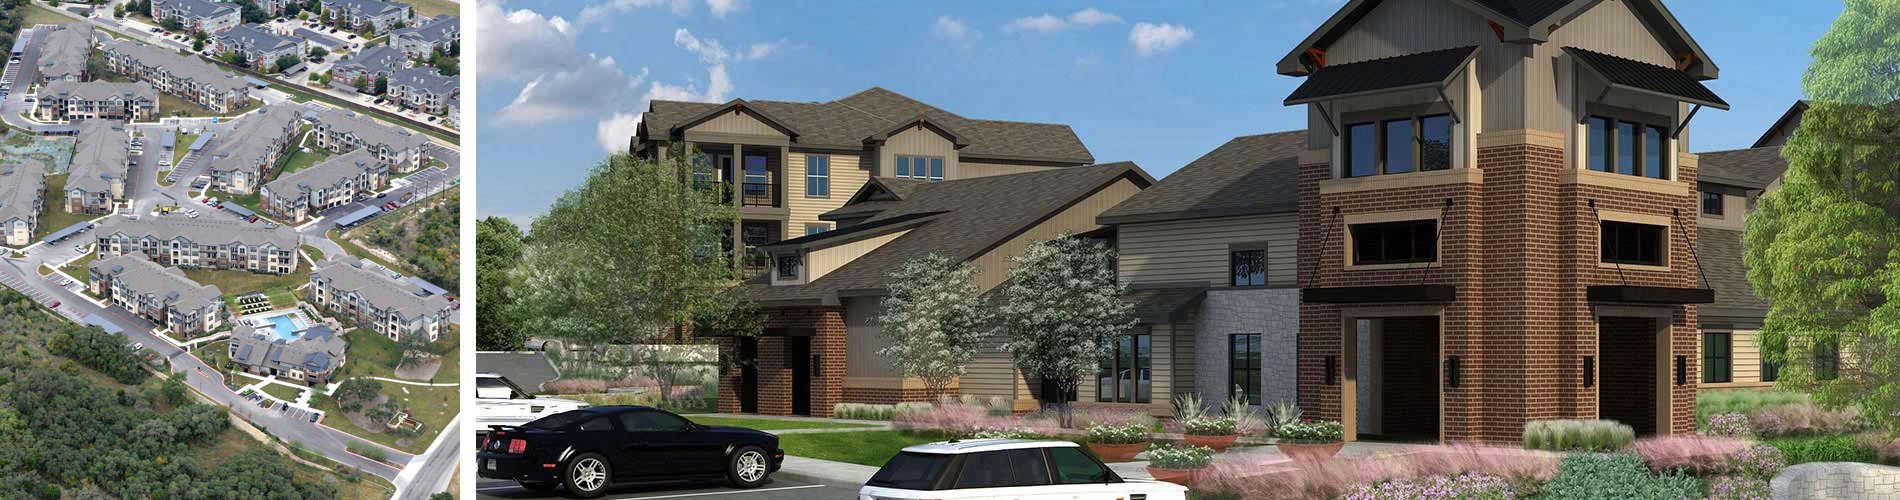 Trinsic Residential Group Aura Westover Hills Apartments